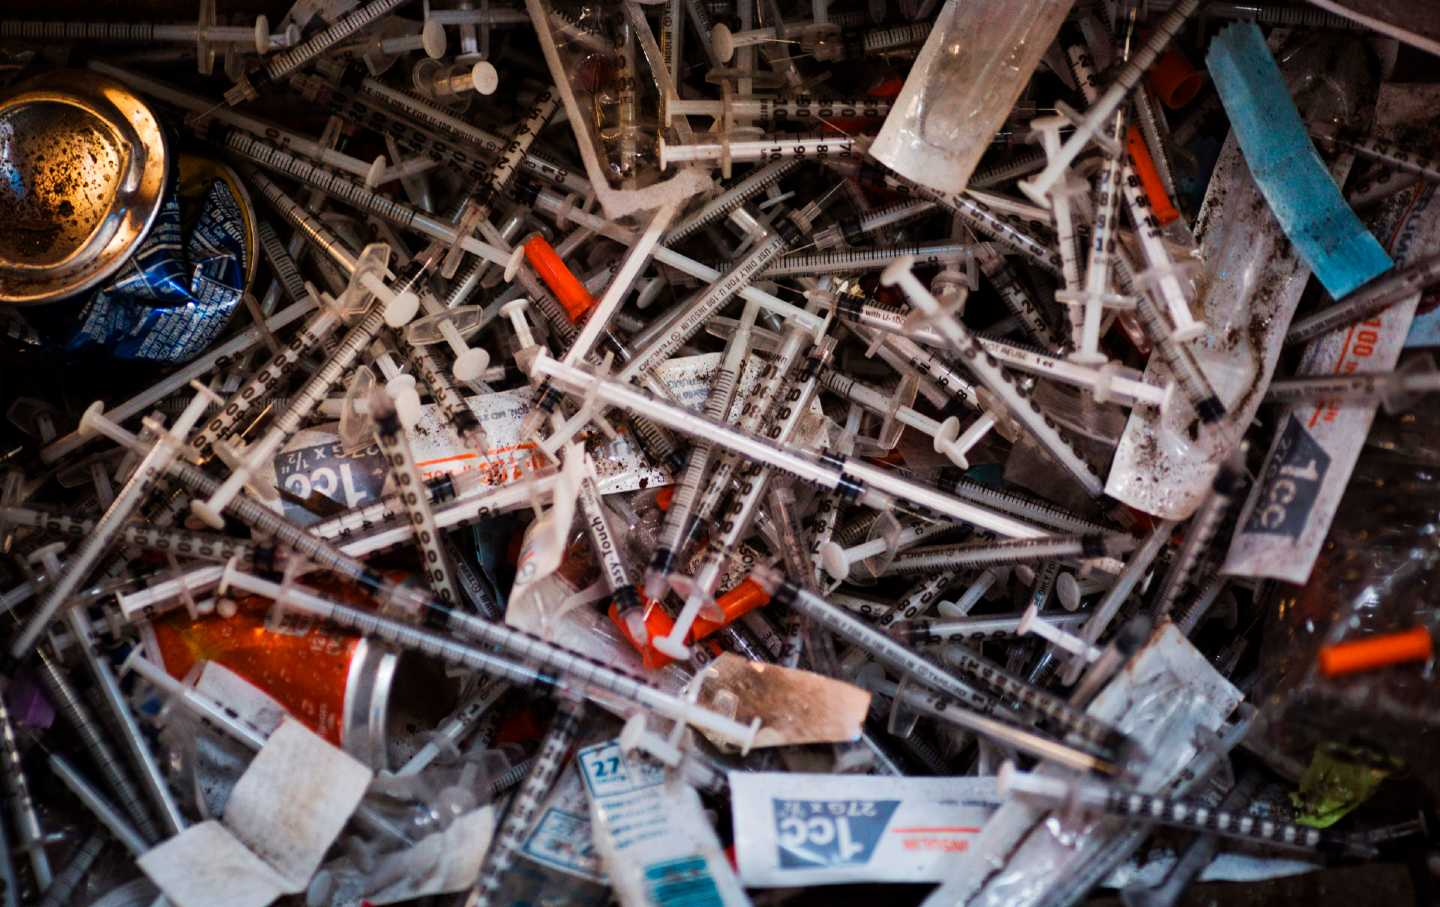 opioid-pa-getty-img